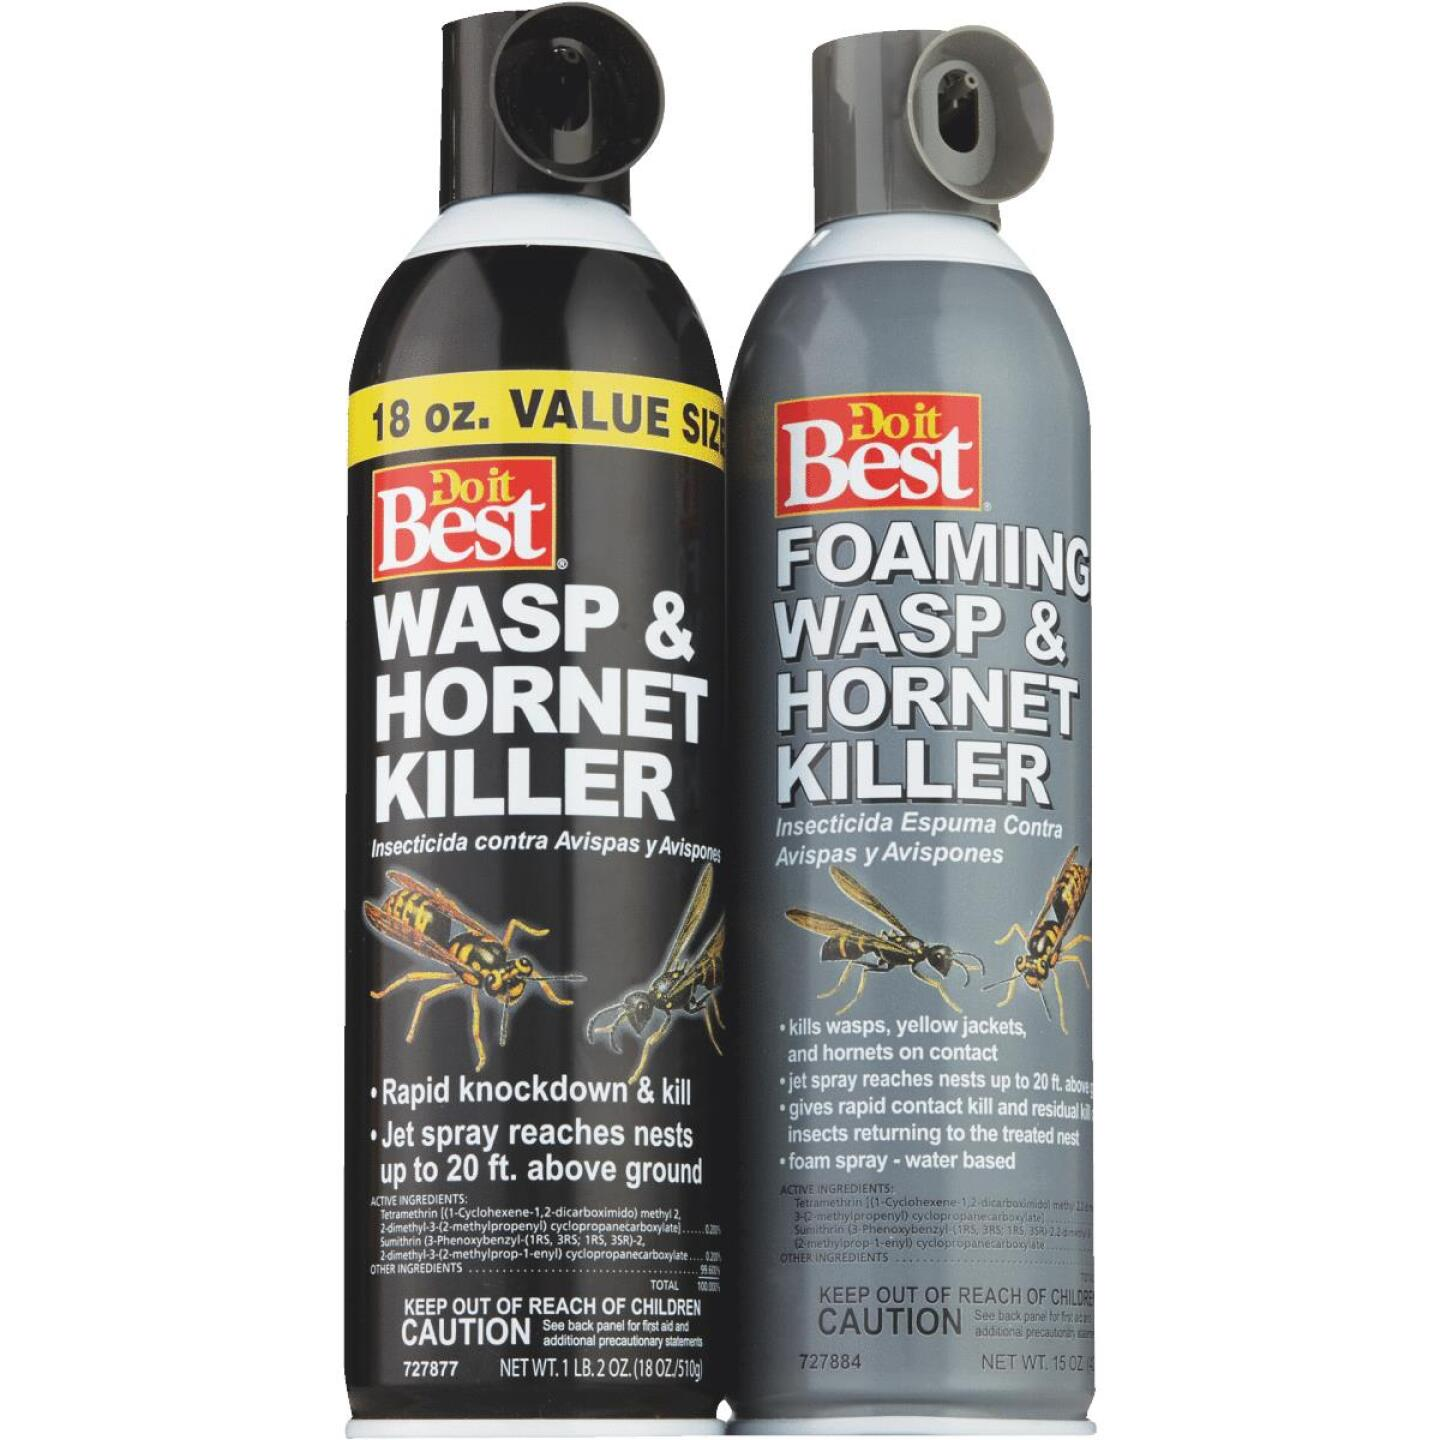 Do it Best 17.5 Oz. Foaming Aerosol Spray Wasp & Hornet Killer Image 4